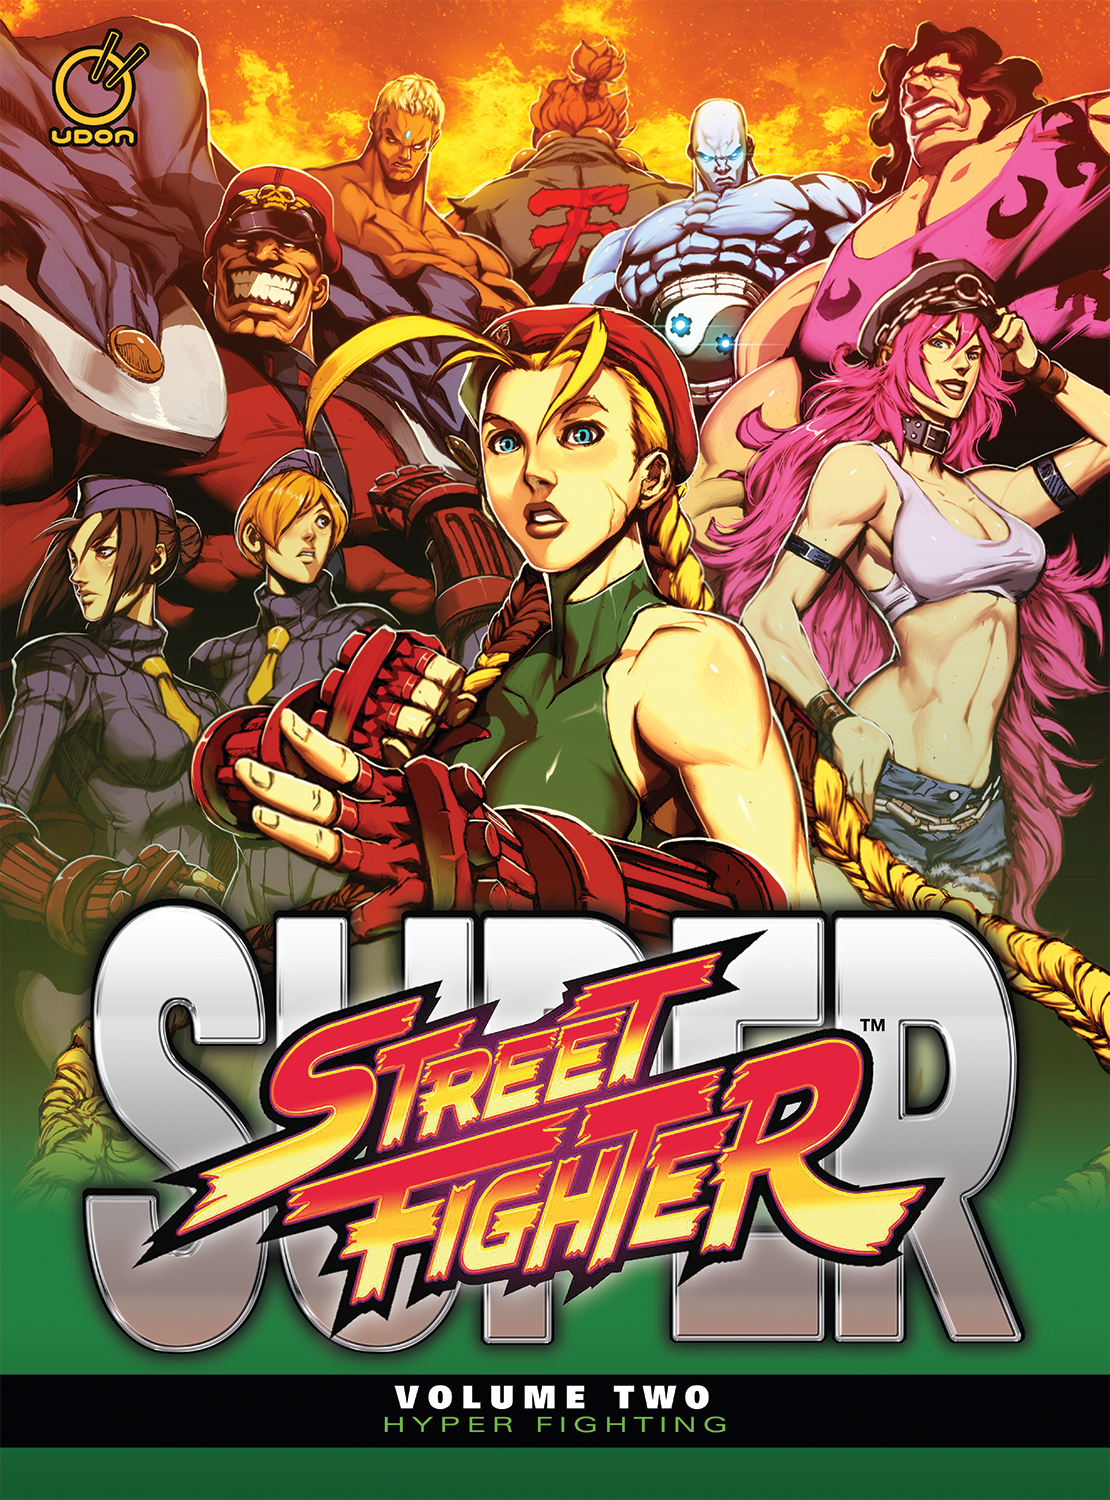 SUPER STREET FIGHTER HC VOL 02 HYPER FIGHTING